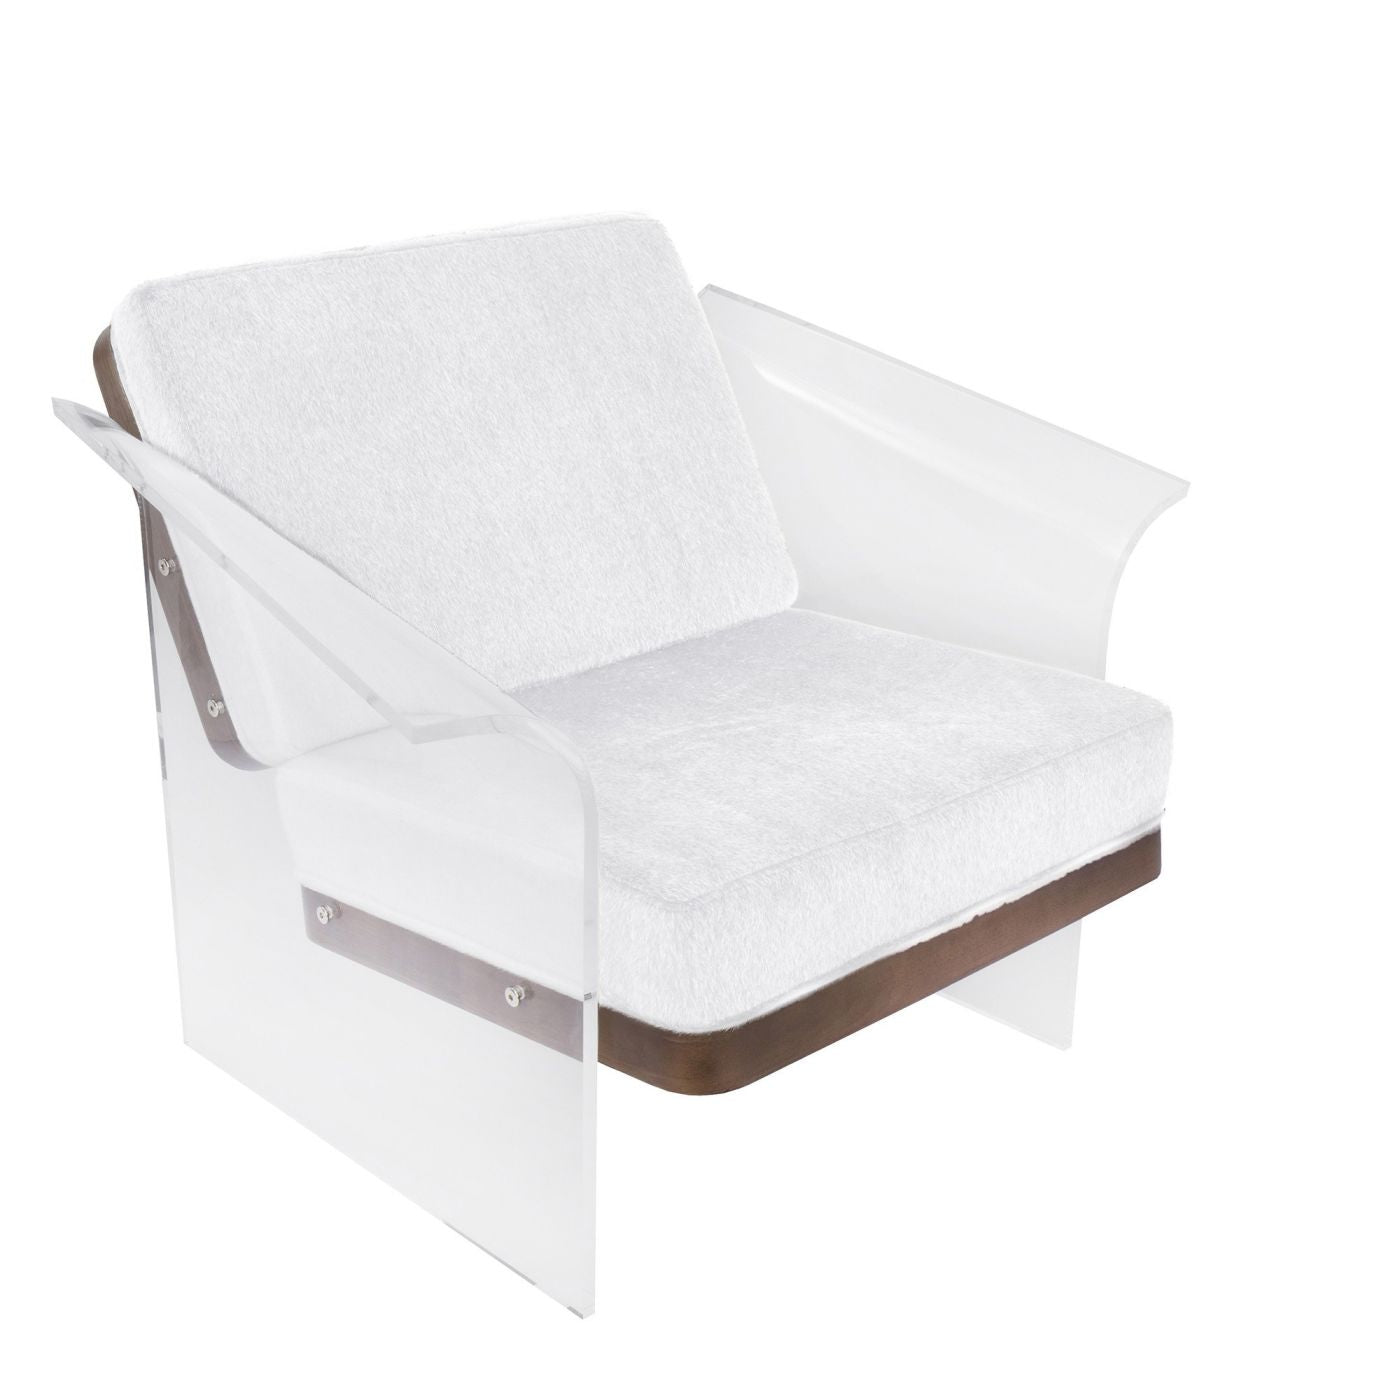 Buy Lumisource Chr Float Wl W Float Clear Chair Walnut Wood White Faux Fur Fabric At Contemporary Furniture Warehouse